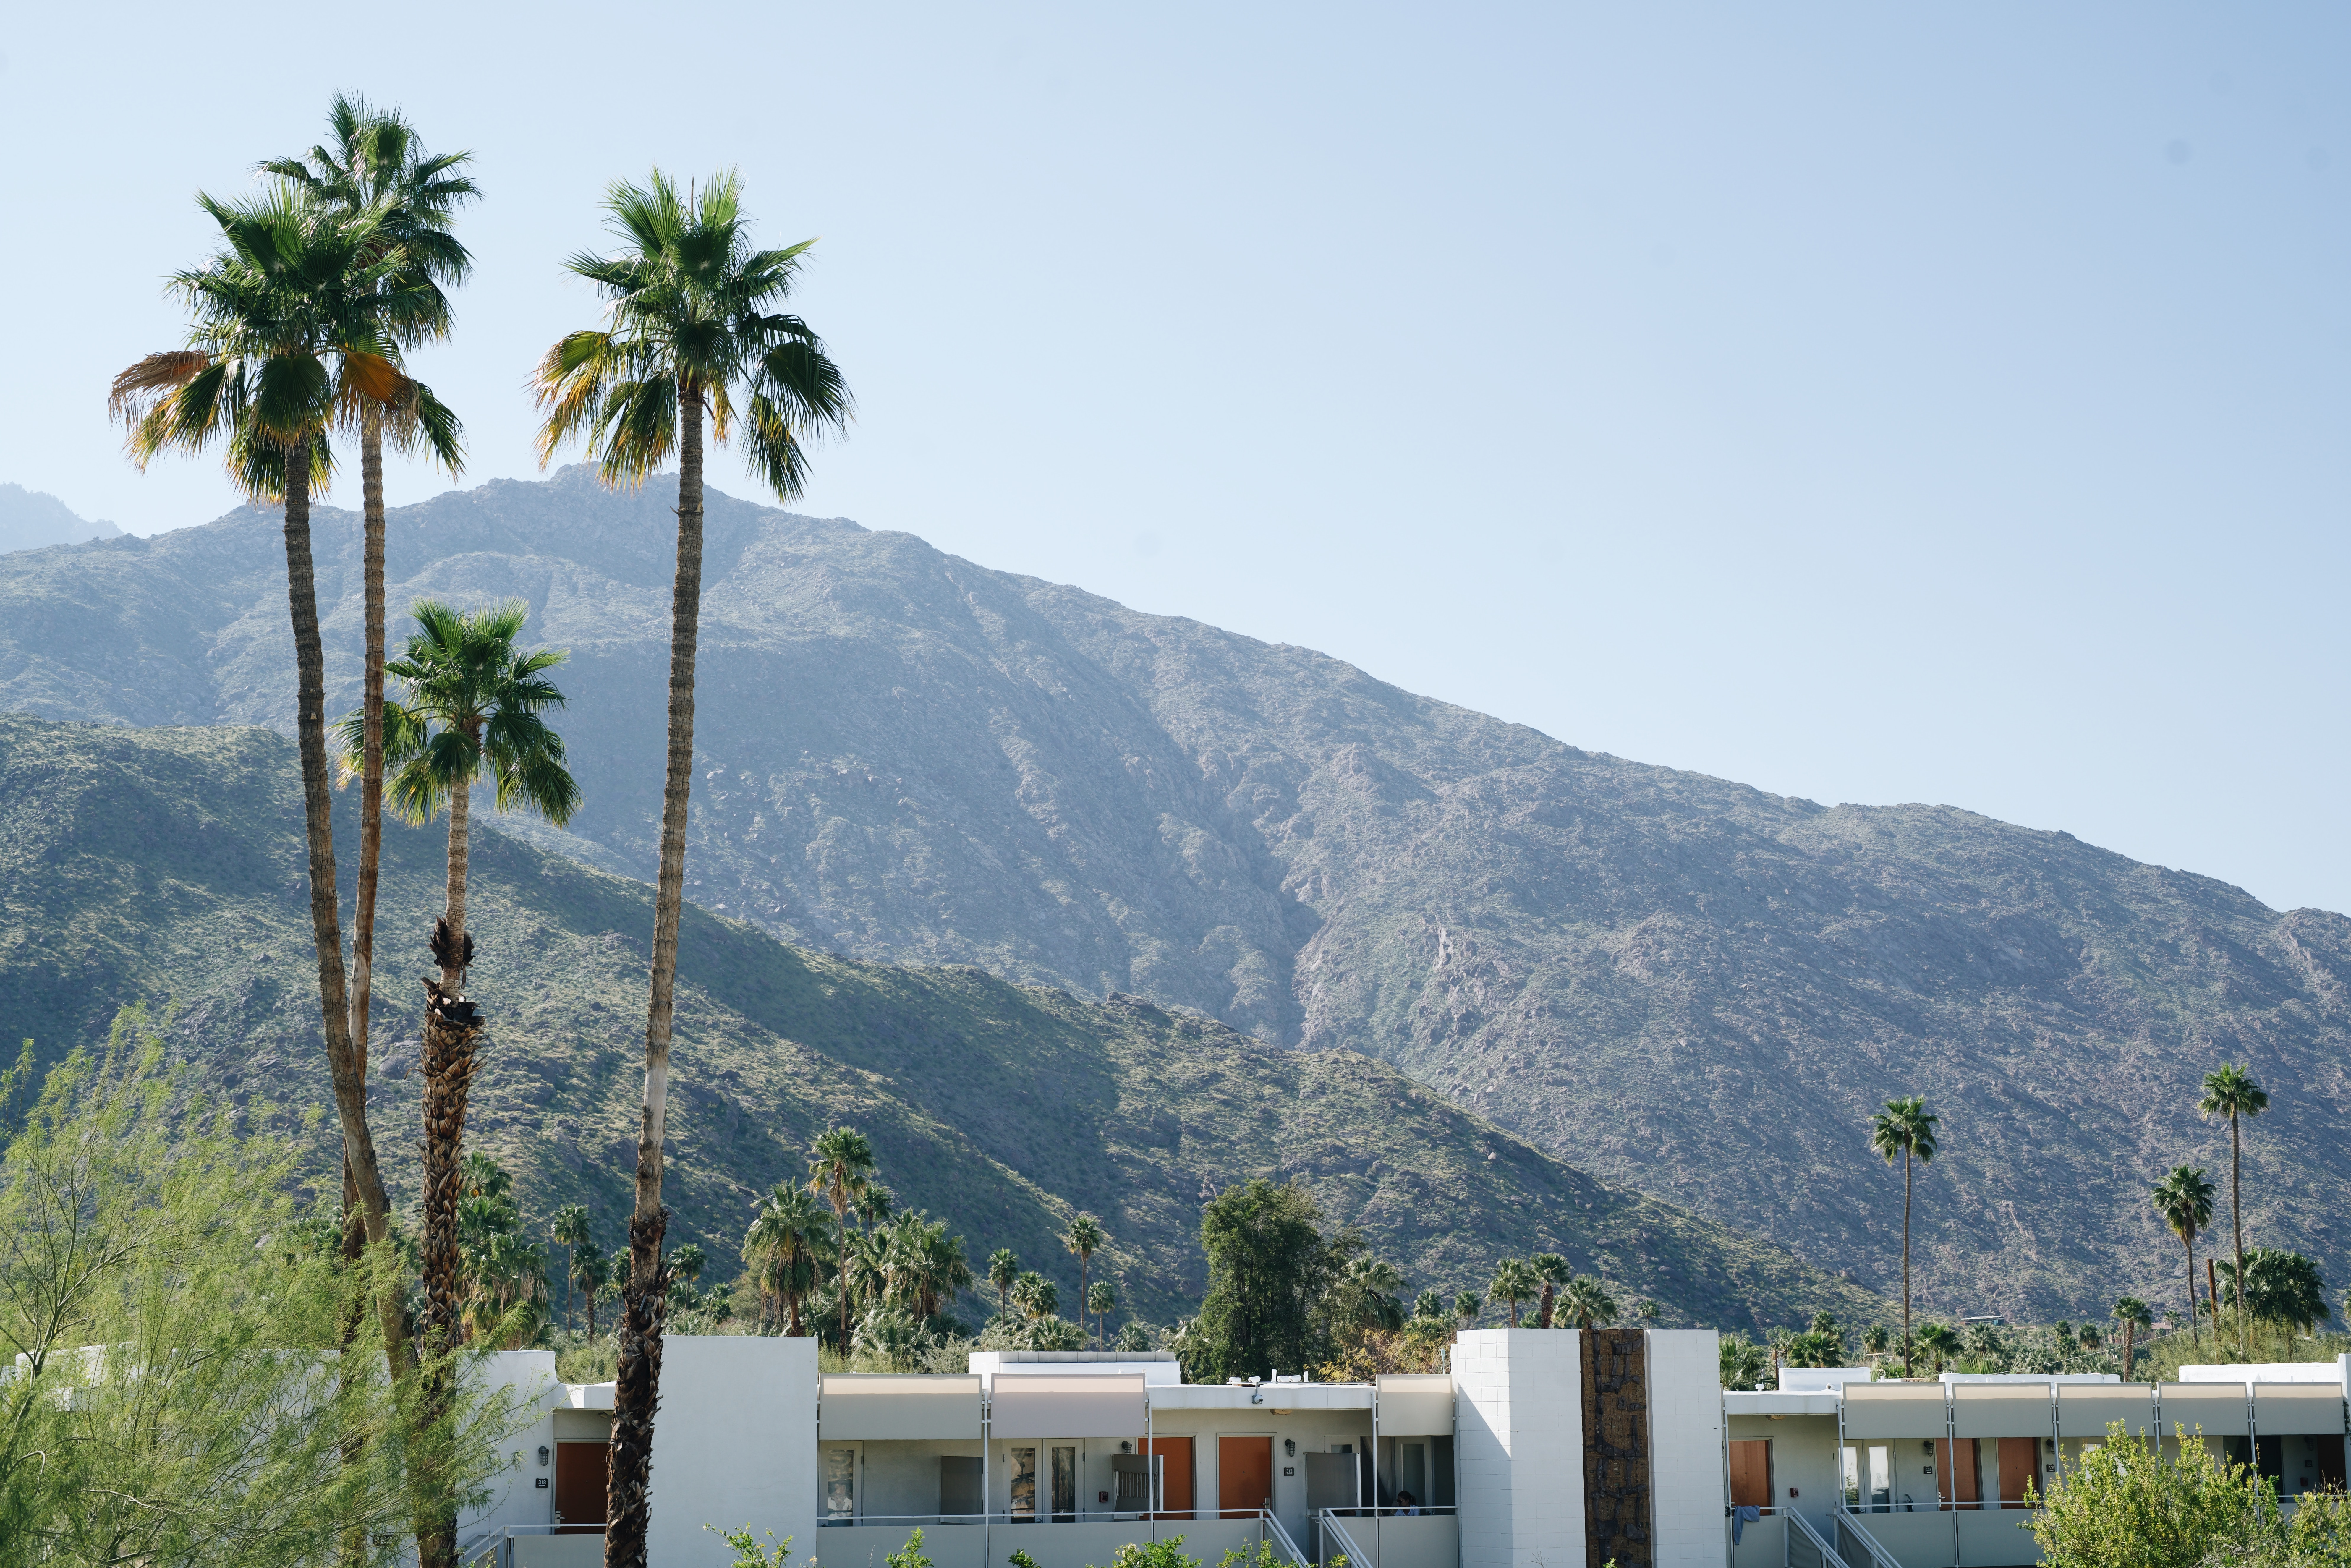 Palm Springs City Officials Announce Upcoming Cannabis Ordinance Revision